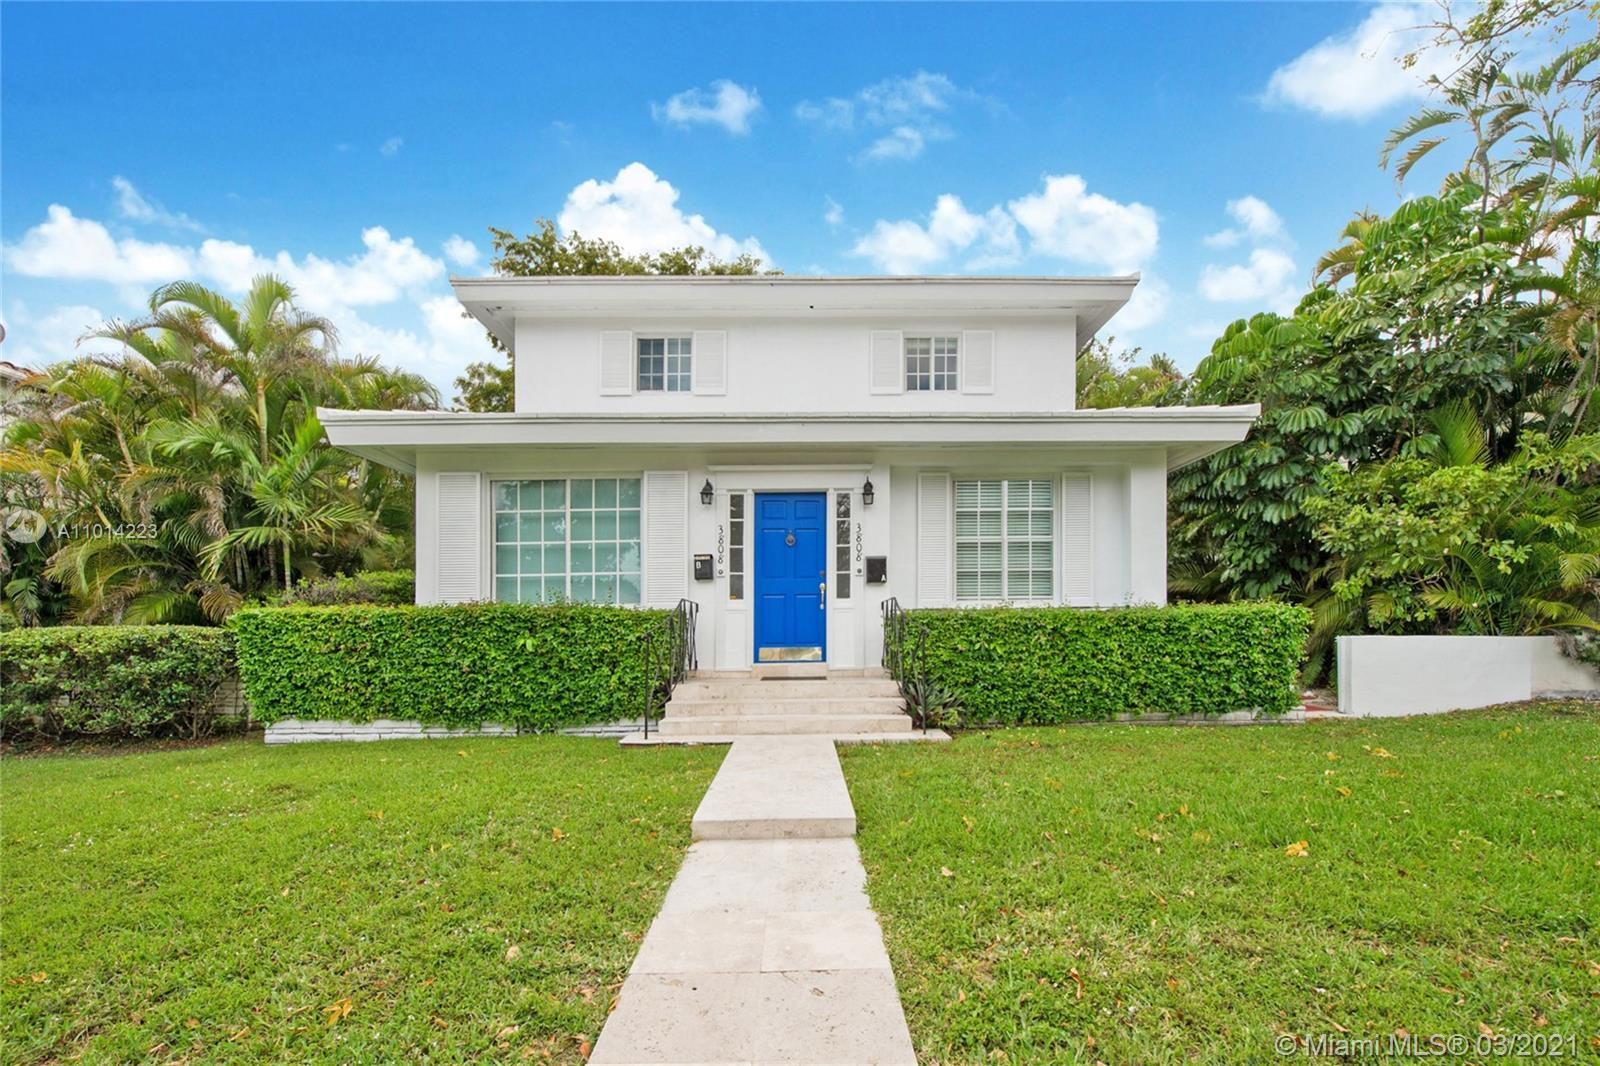 Remodeled, move in condition duplex in one of Miami's most sought after neighborhoods - Coral Gables